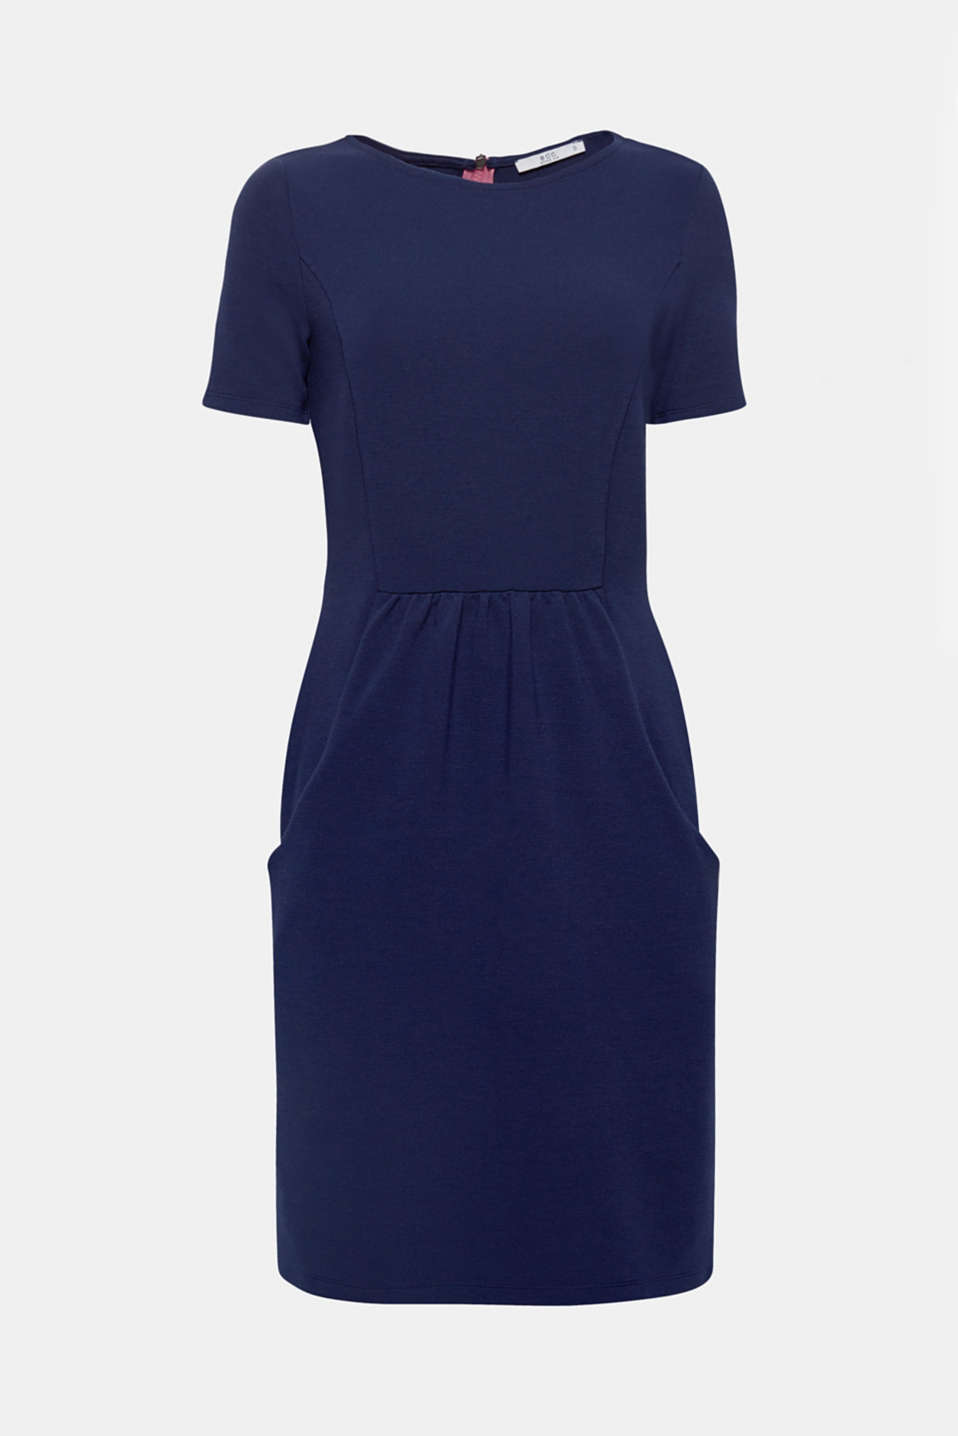 Just the way we like it: feminine, casual and extremely comfortable, this minimally fitted dress made of ribbed jersey with slit pockets is all set to become our absolute fave!